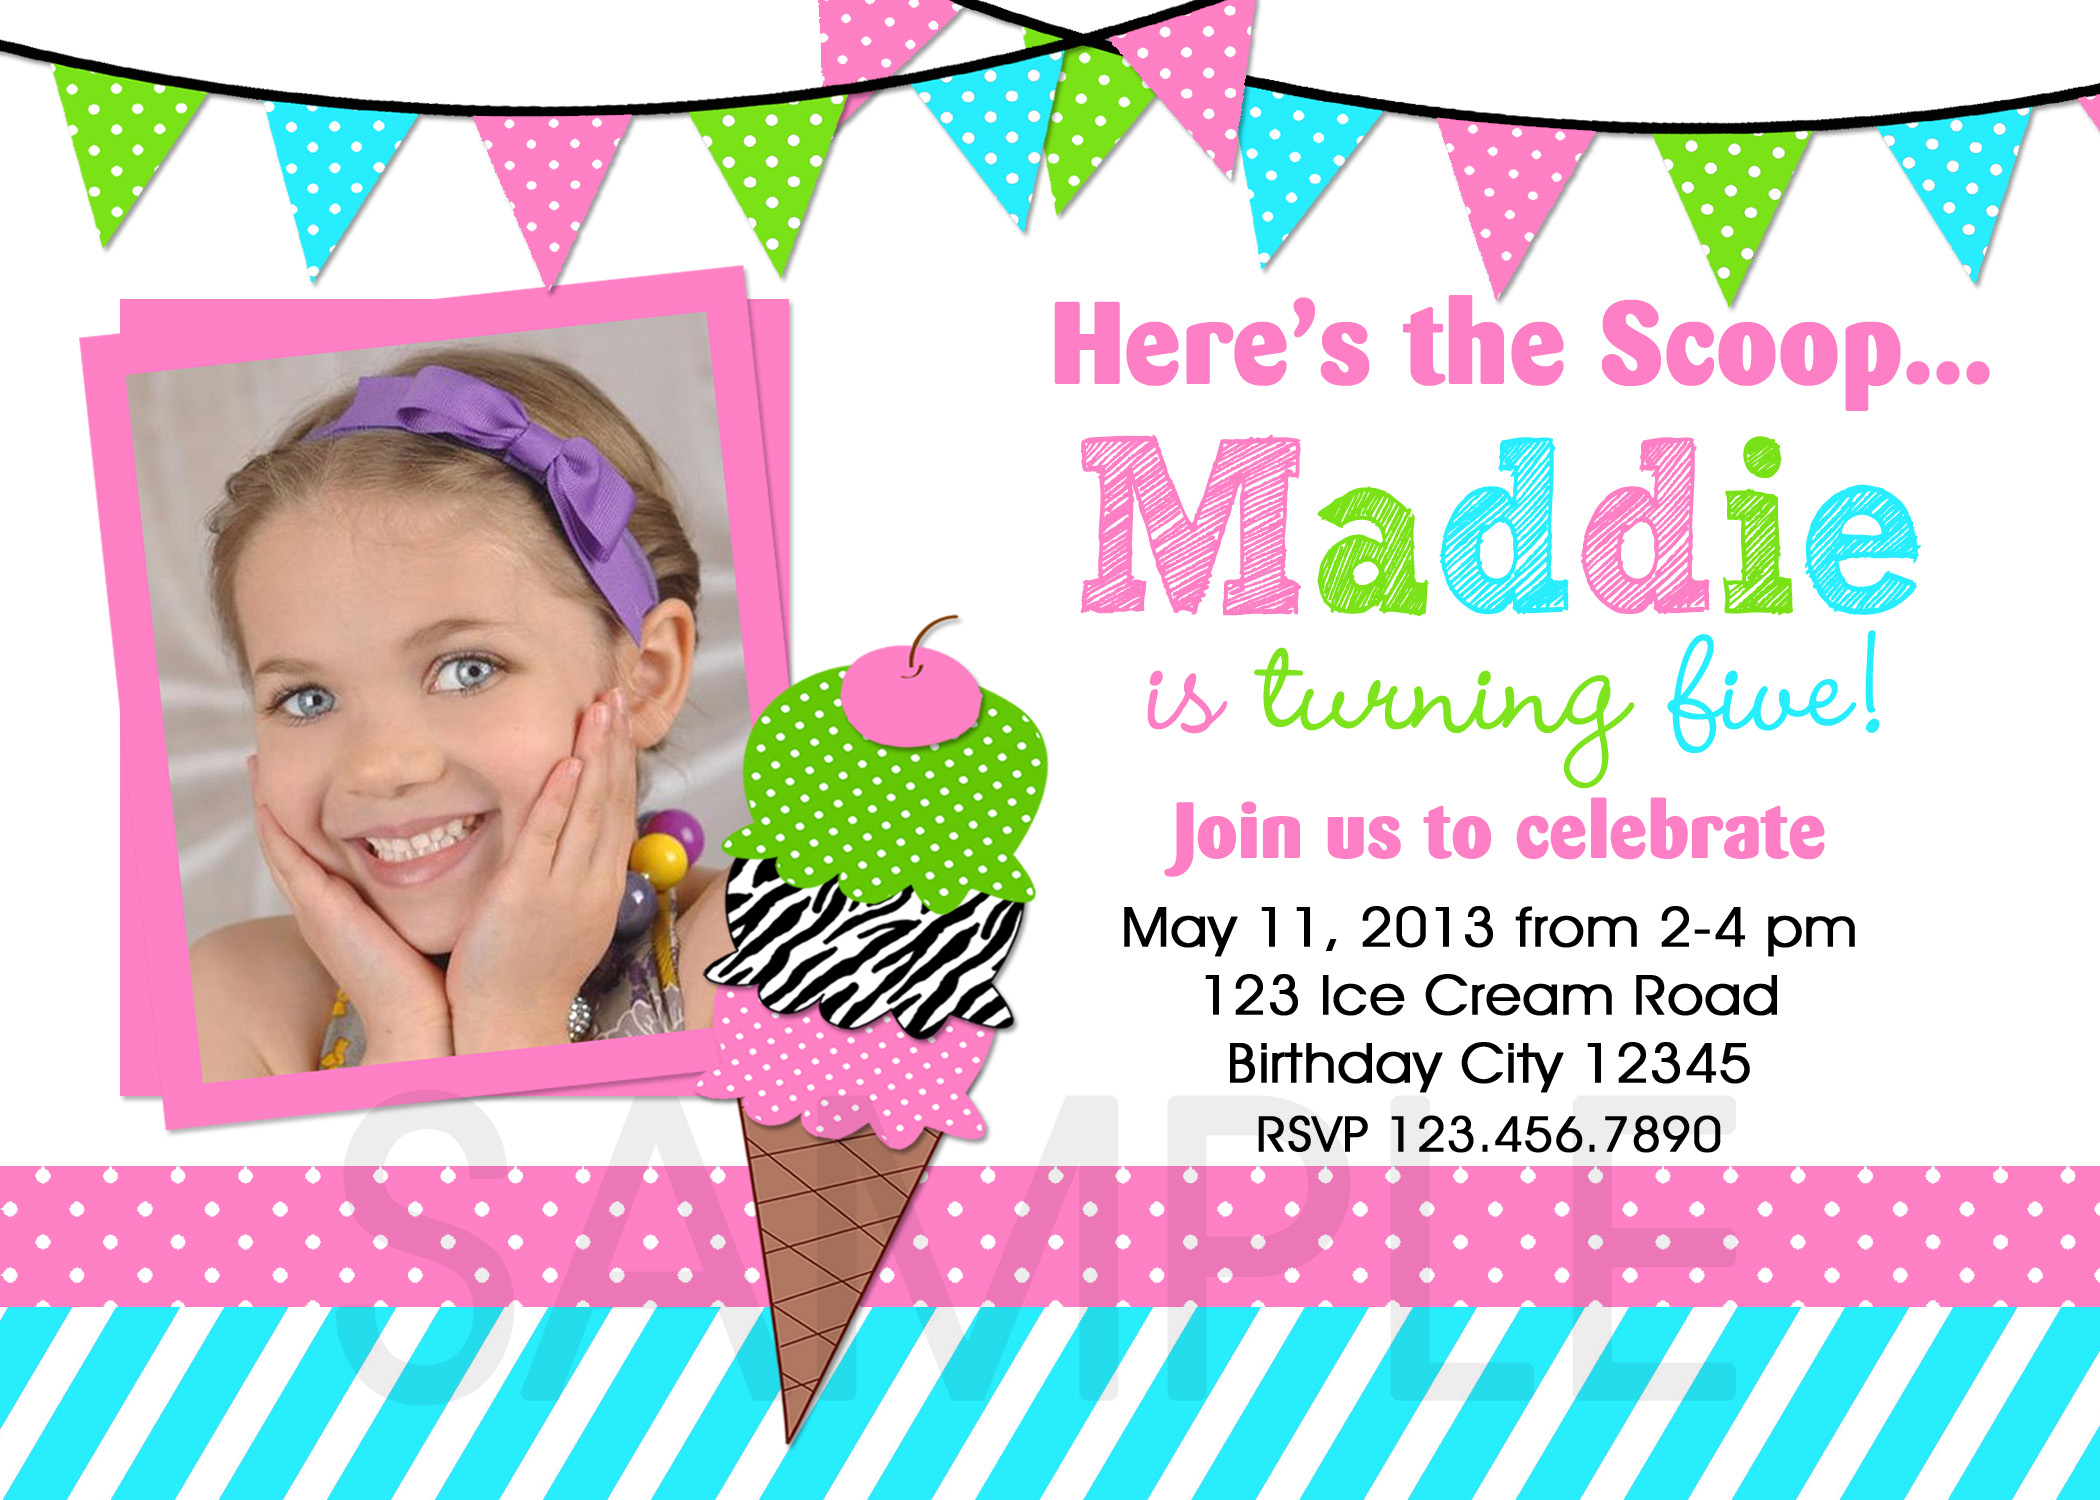 Ice Cream Birthday Party Invitations Summer Themed Invite Ice